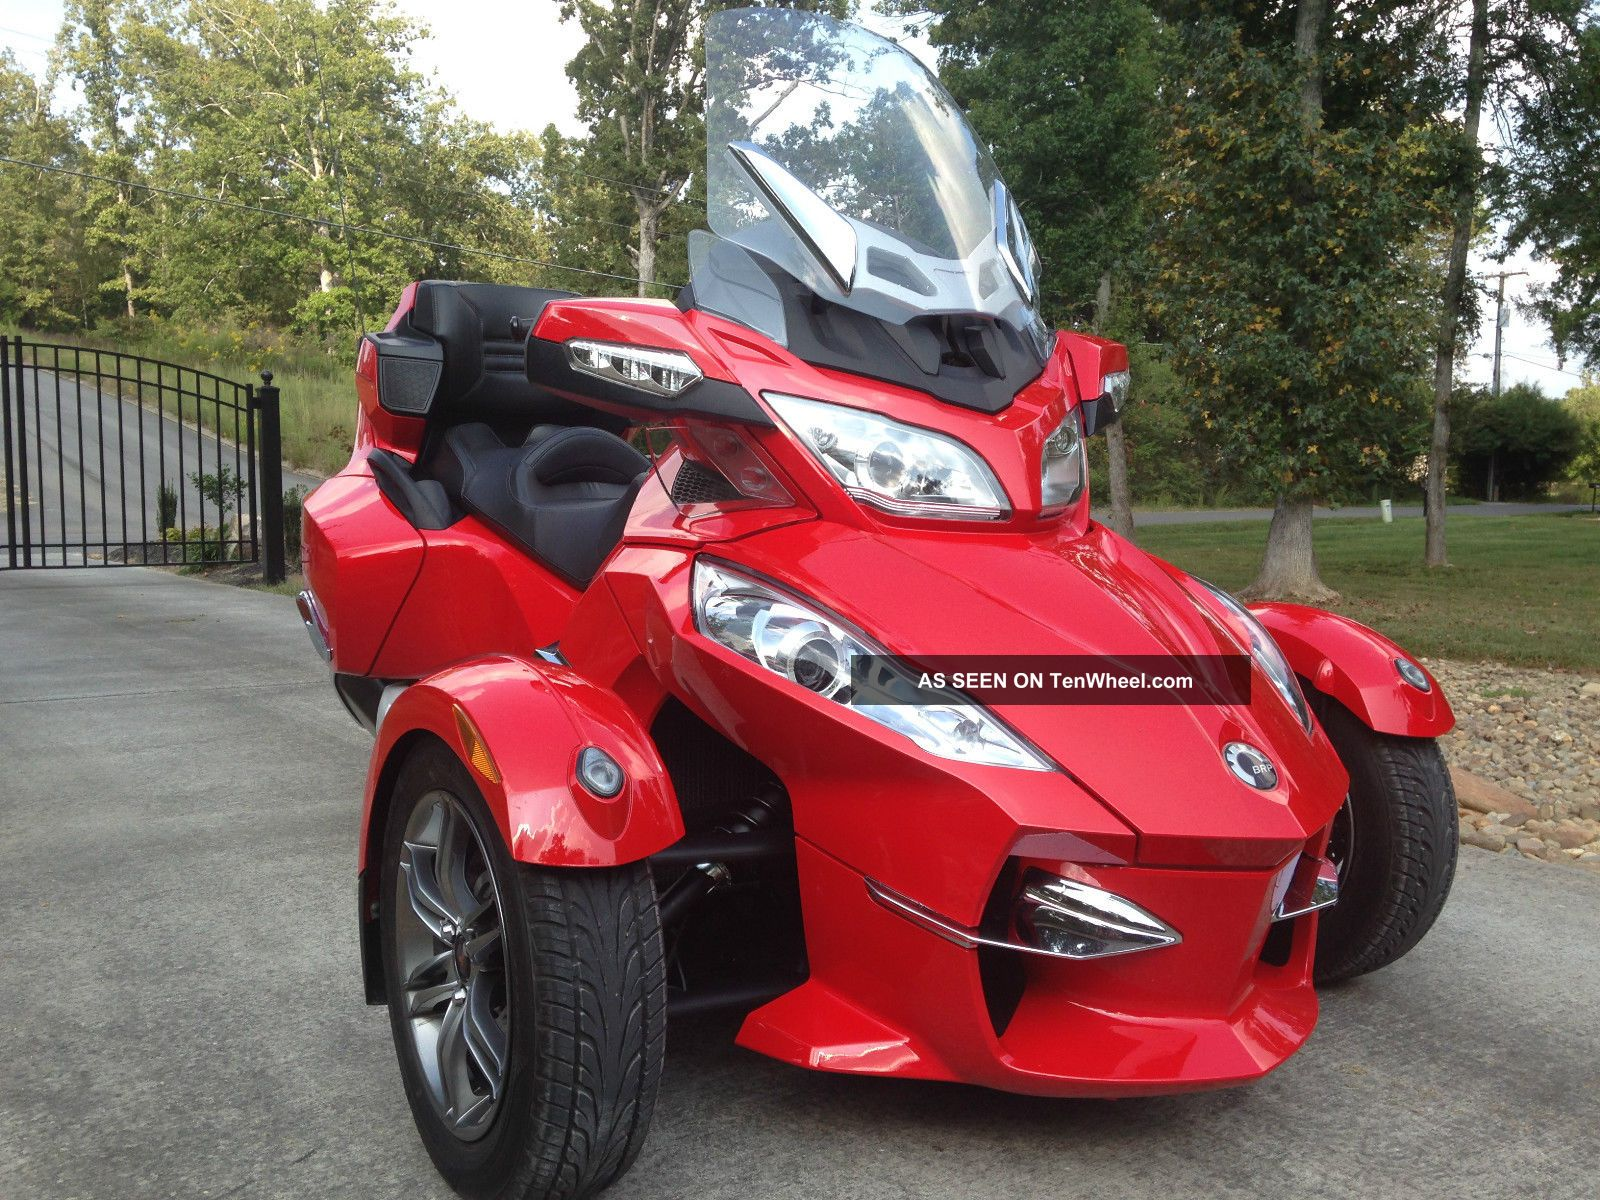 2012 Can Am Spyder Rt - Se5 Red Reverse Trike,  3 Wheeler,  Touring Motorcycle Can-Am photo